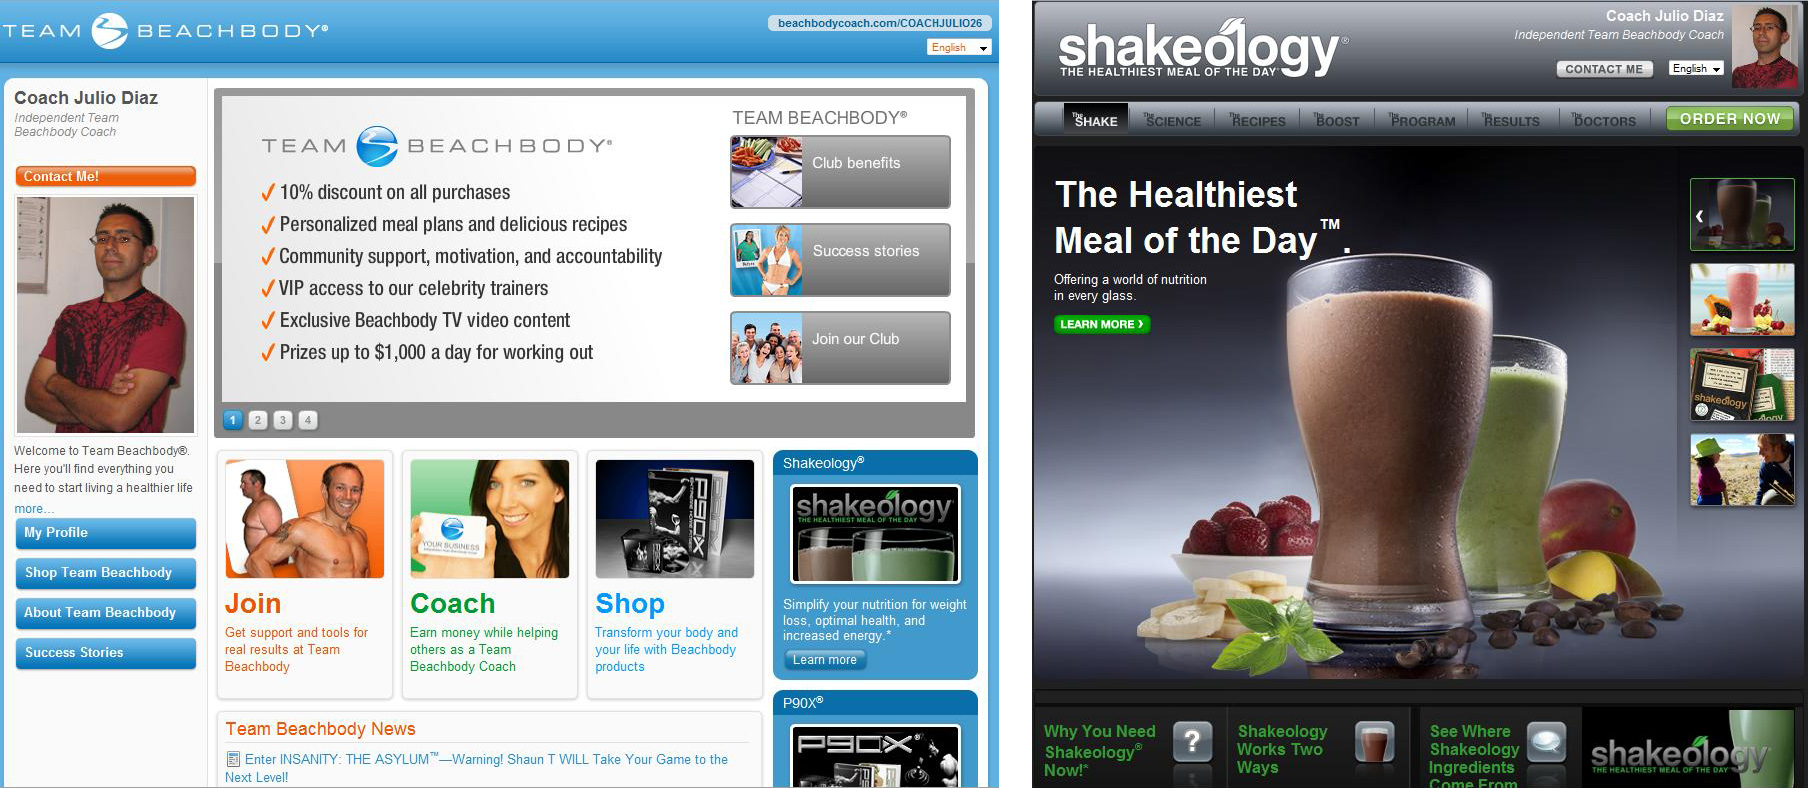 independent team beachbody coach julio diaz beachbody site main and shakeology